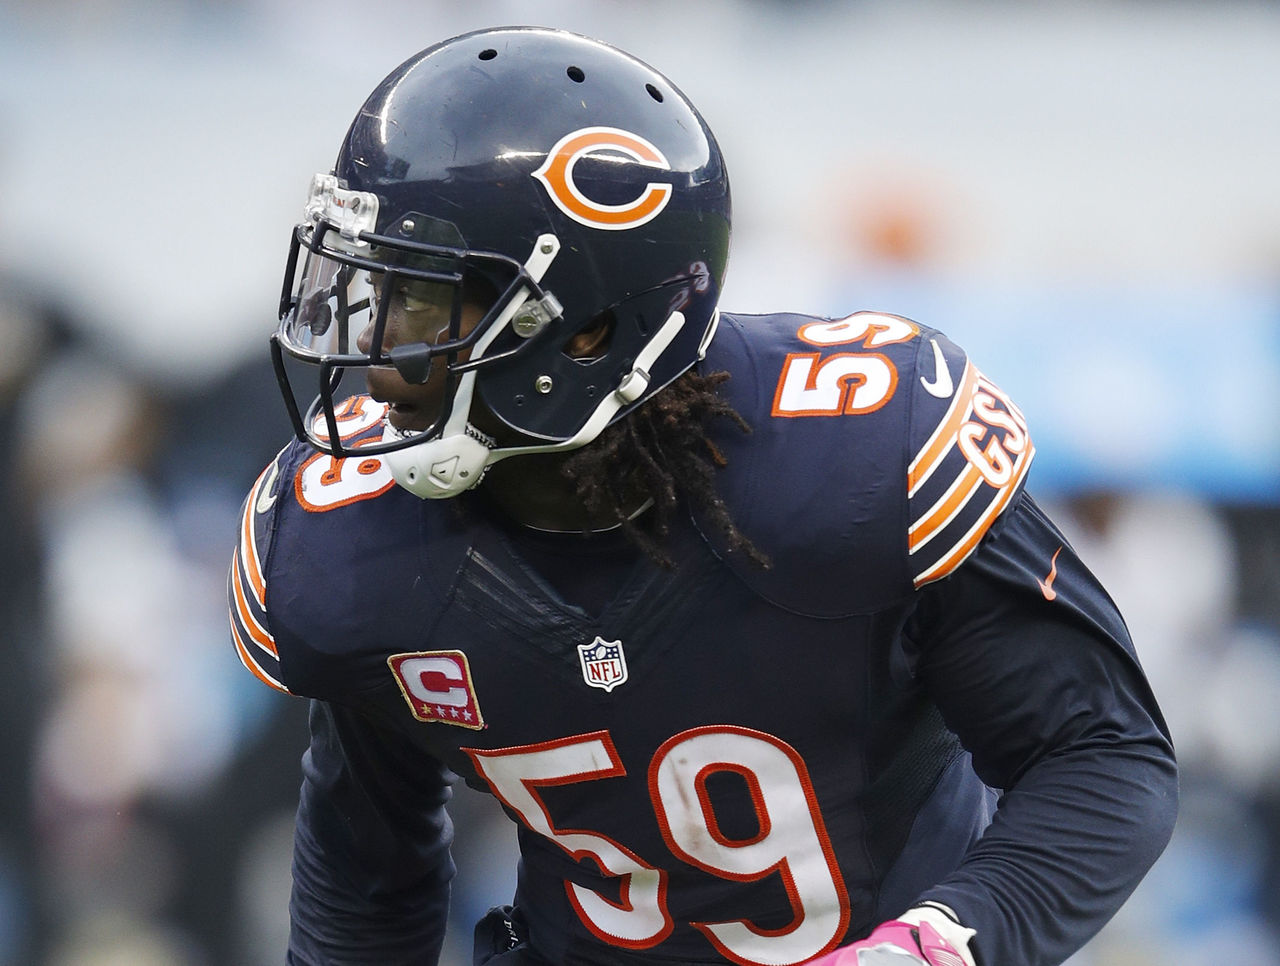 Bears' Trevathan suspended 2 games for hit on Packers' Adams